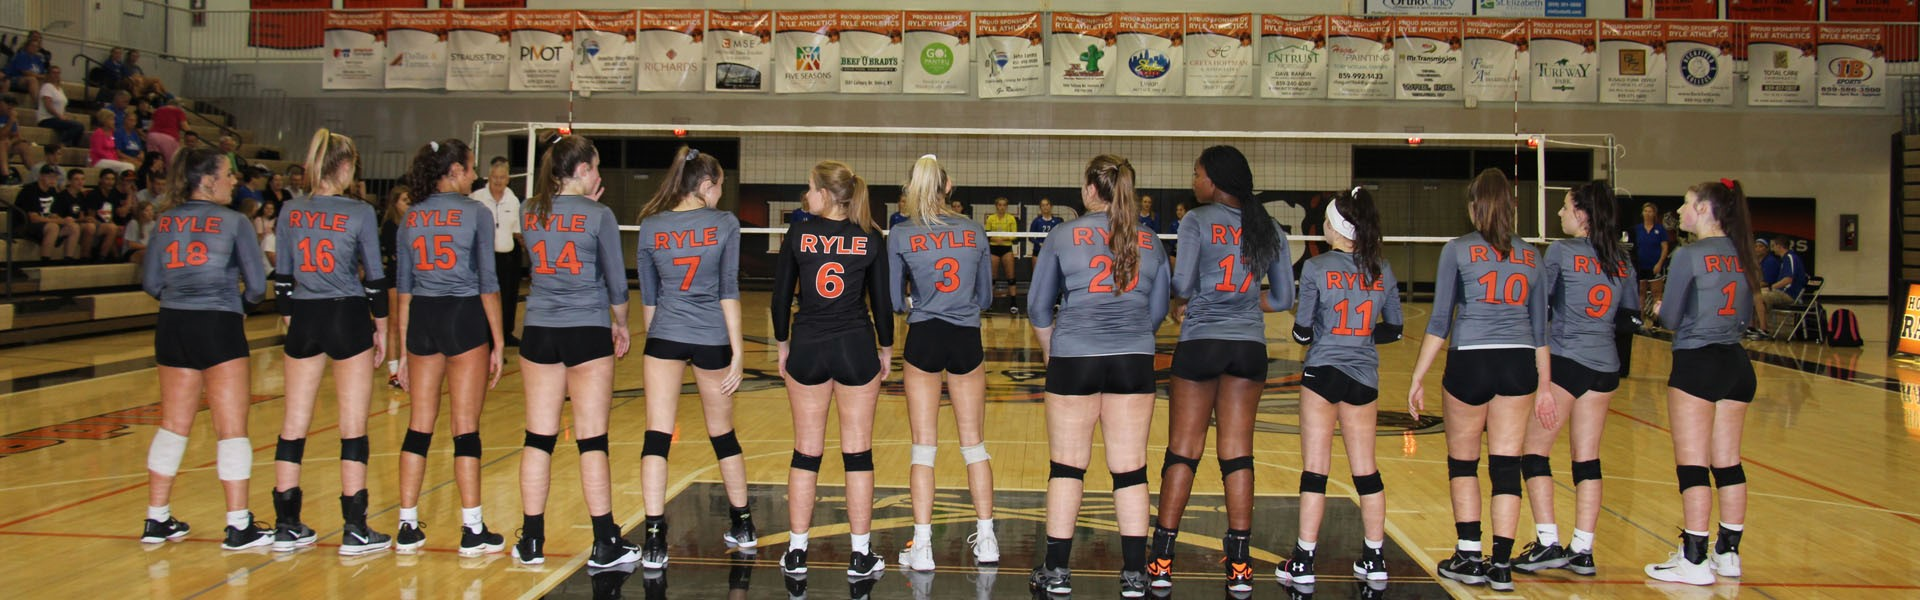 2018 Volleyball Lineup